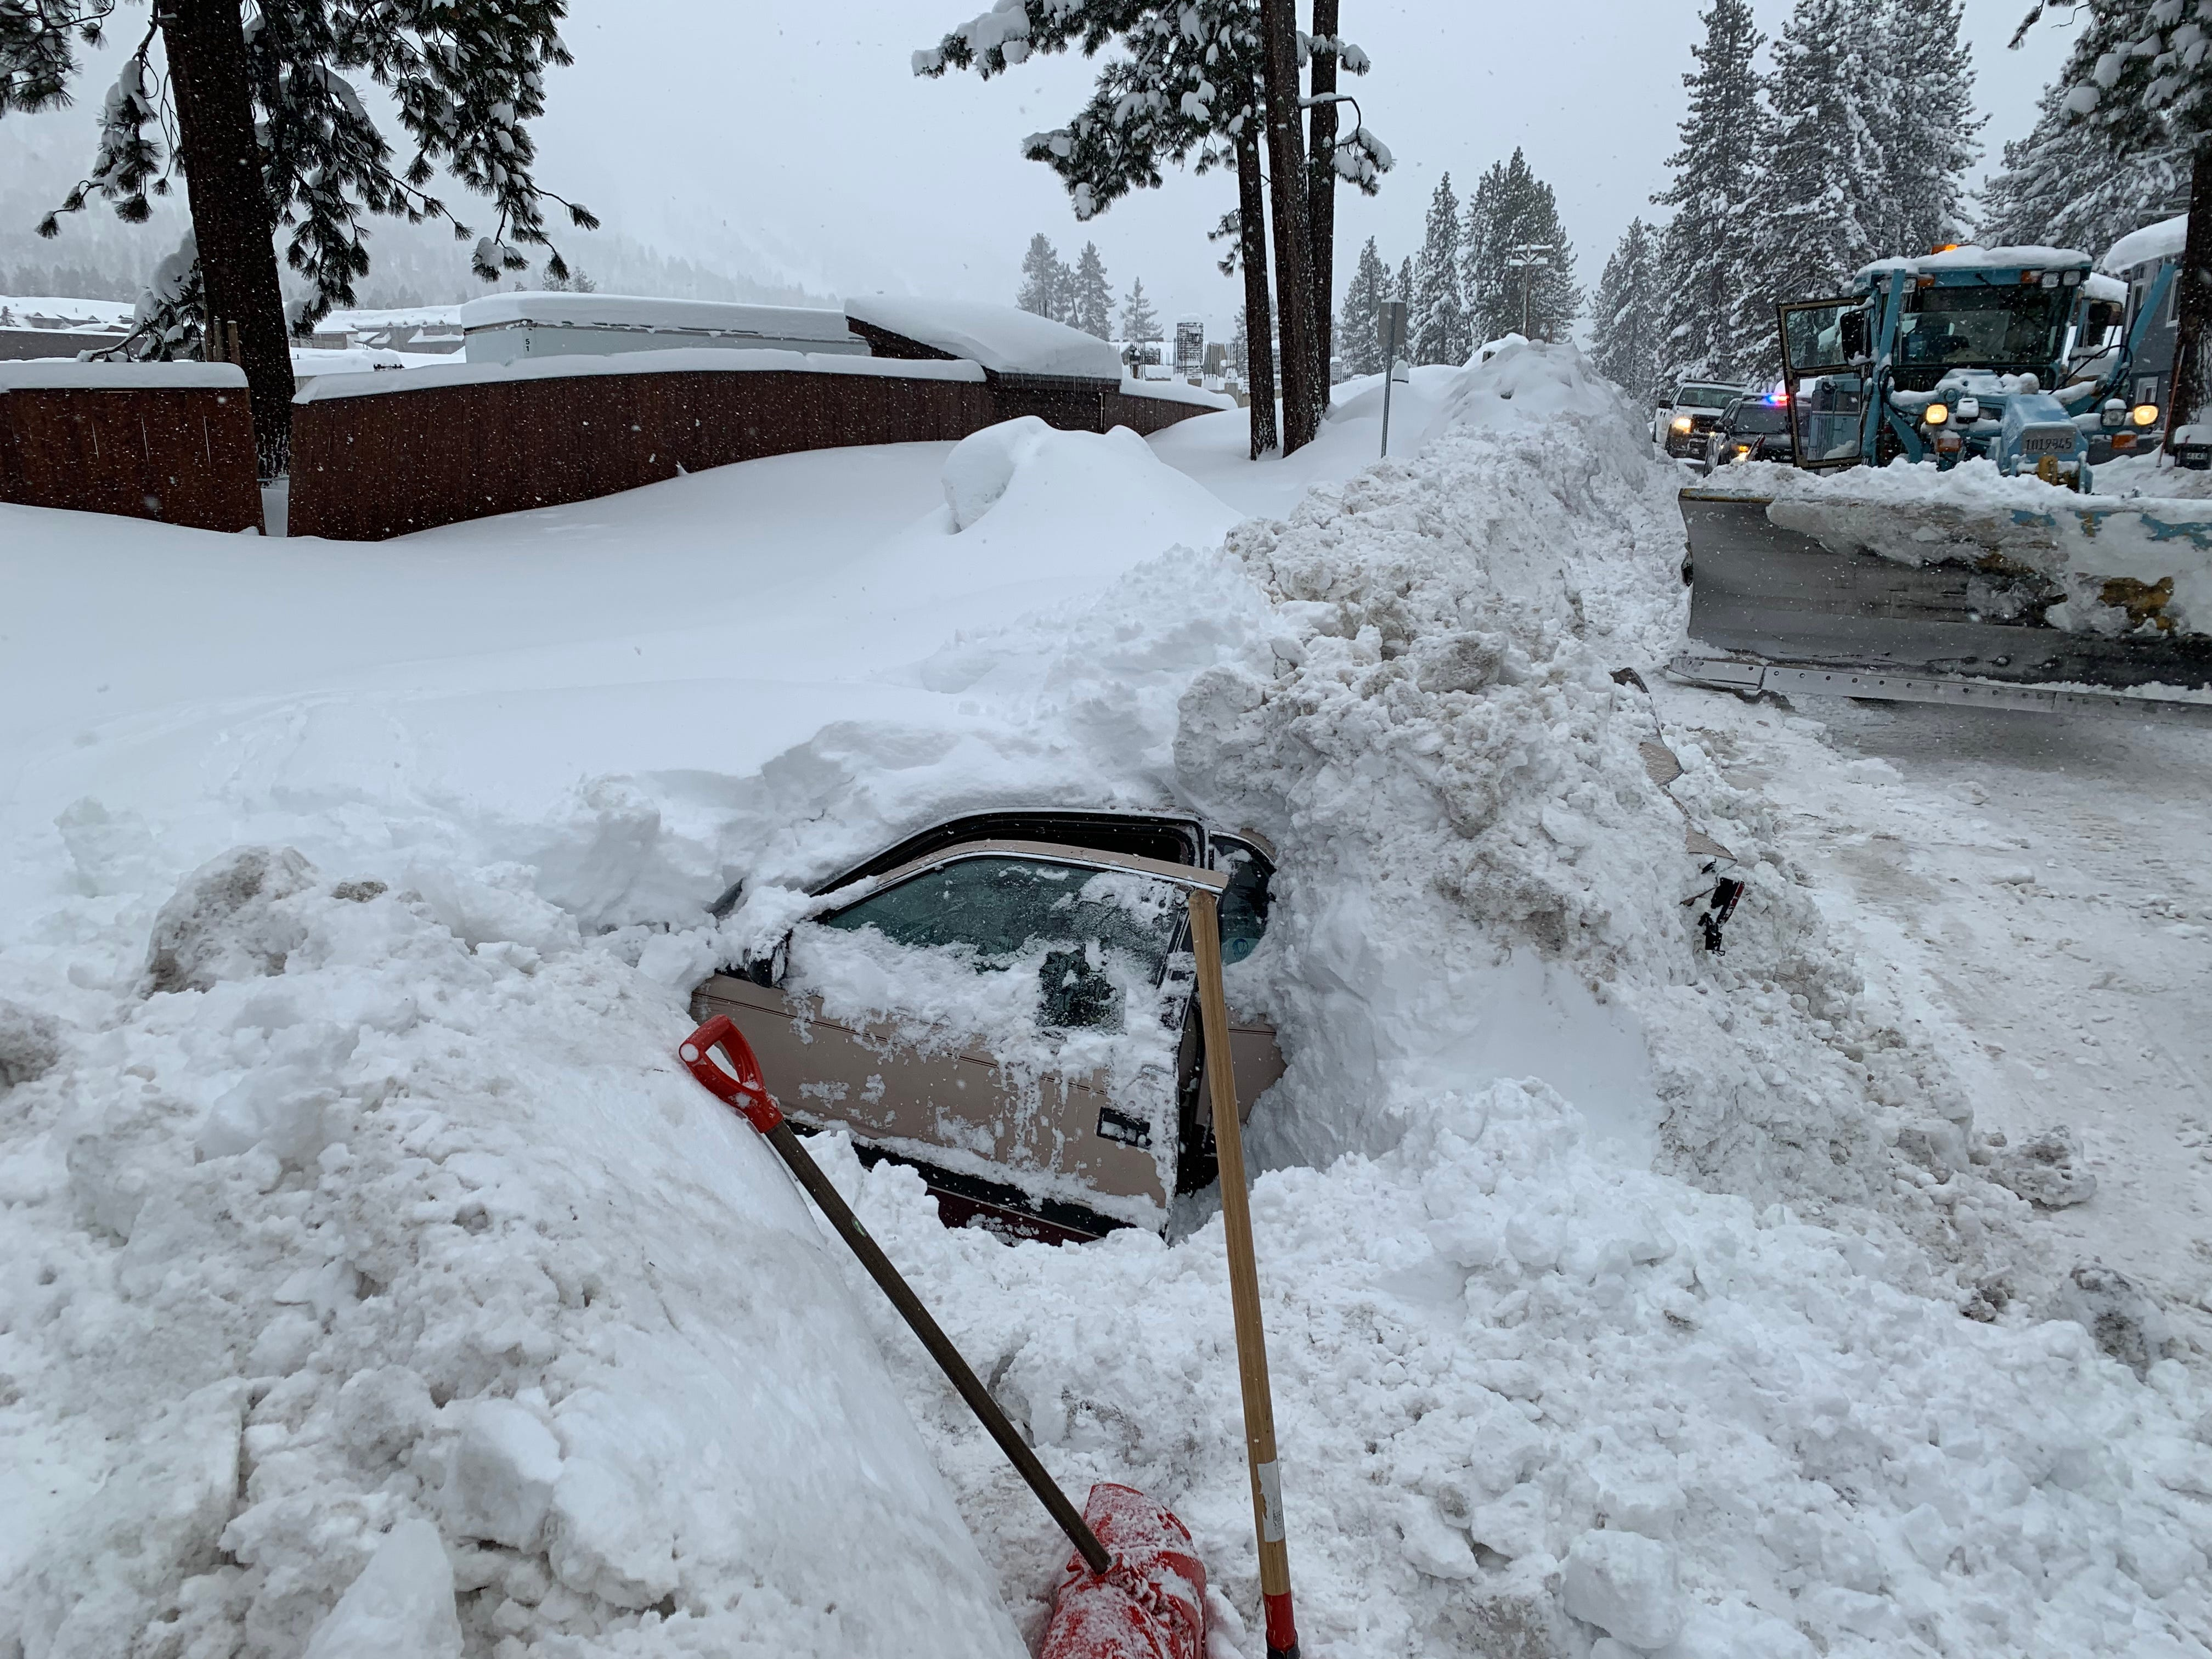 Snowplow strikes buried car in Tahoe, police find woman alive and well inside